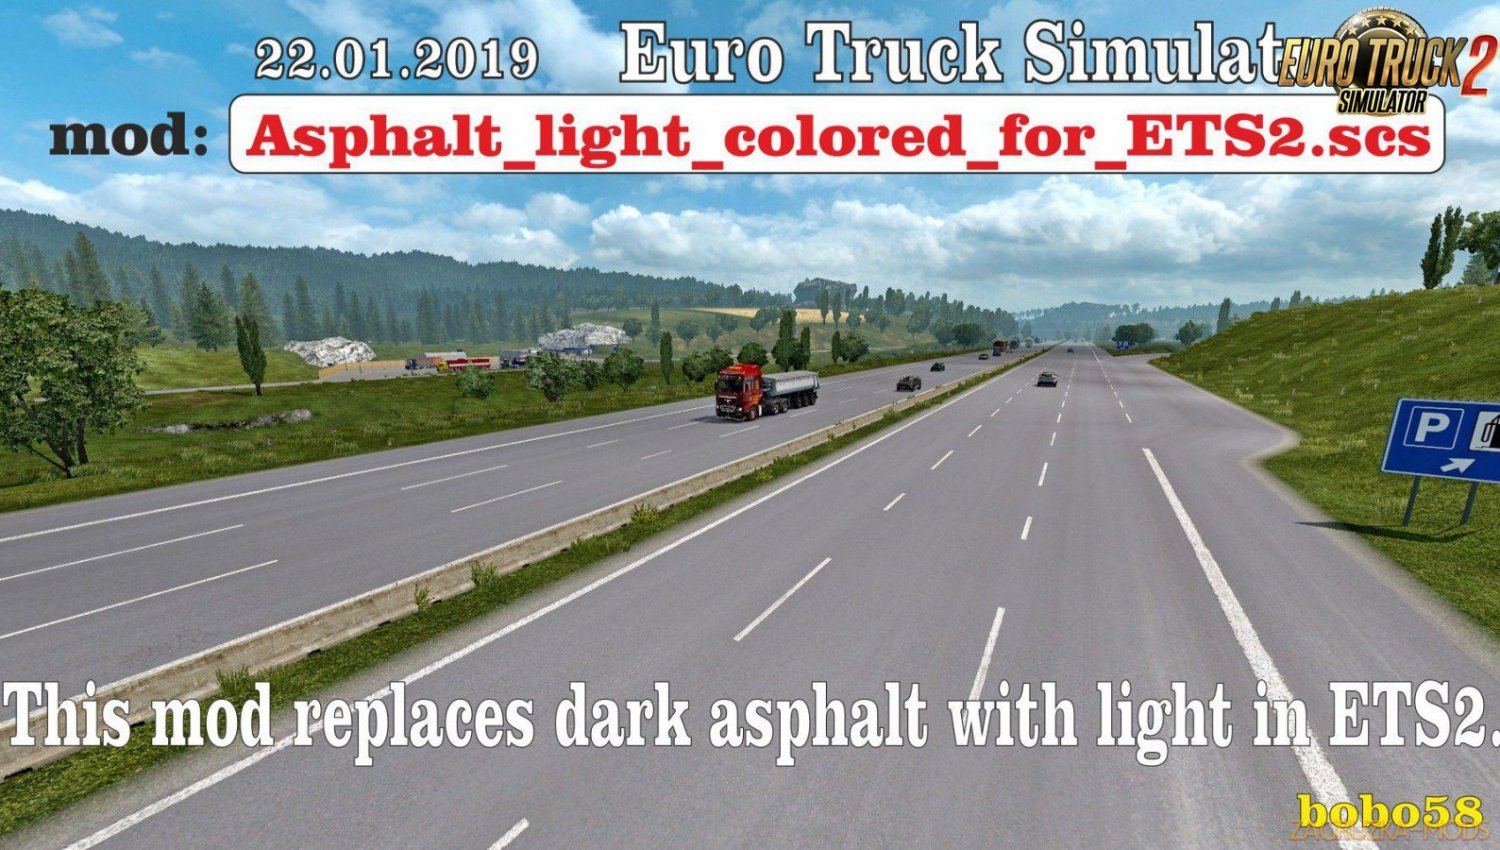 Asphalt light colored for Ets2